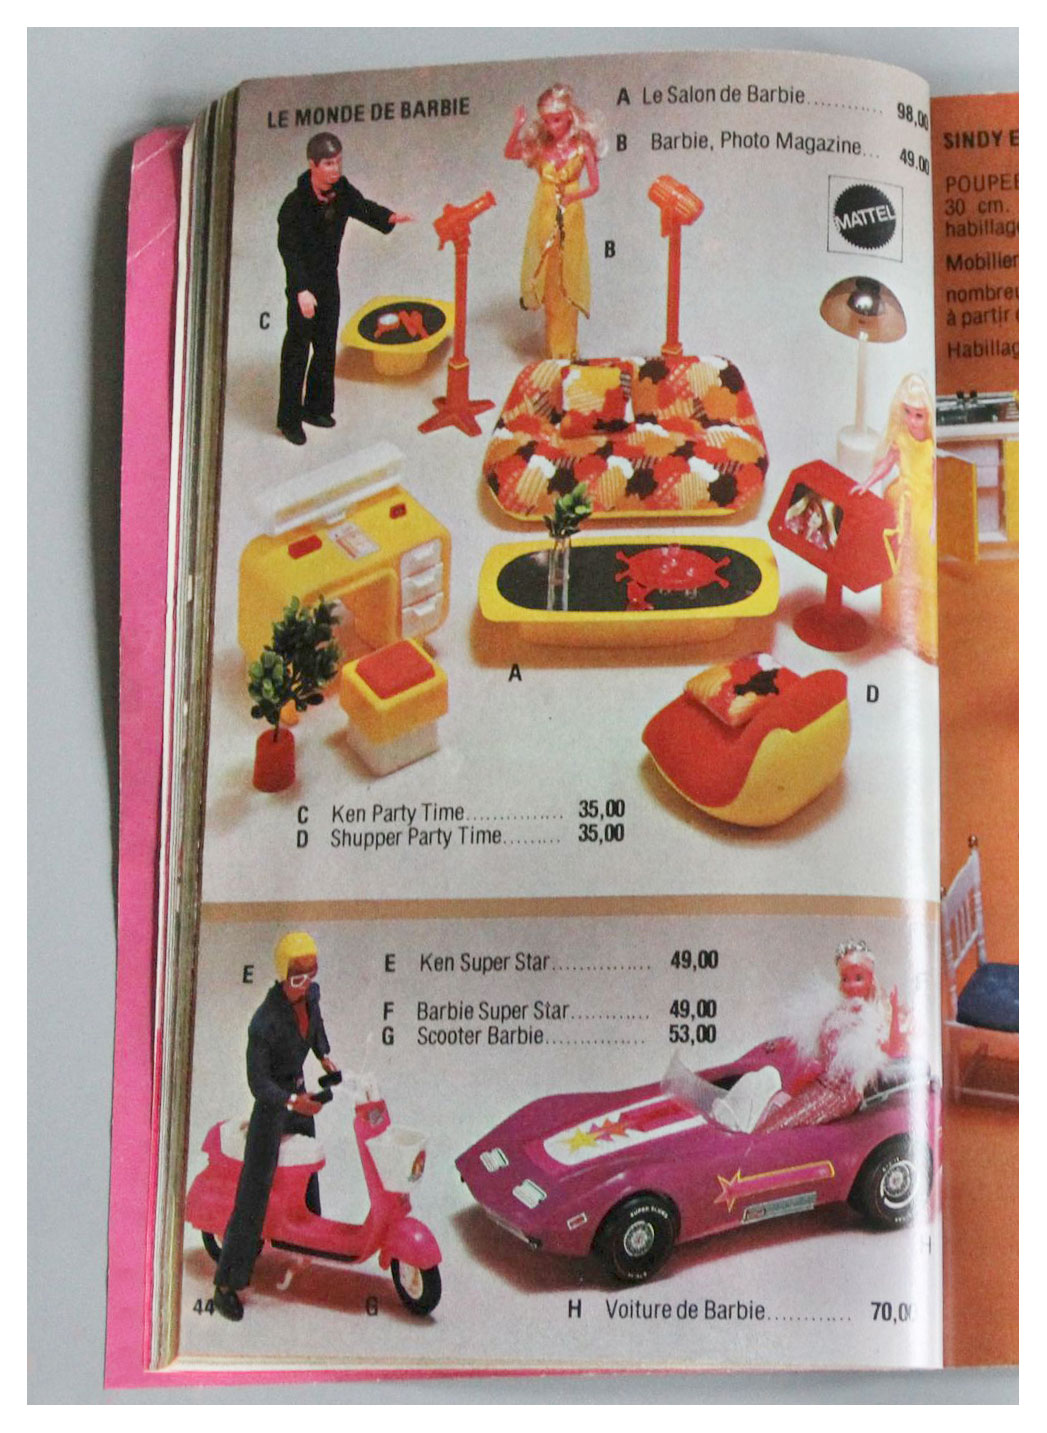 From 1978 French Jouets SAJ catalogue